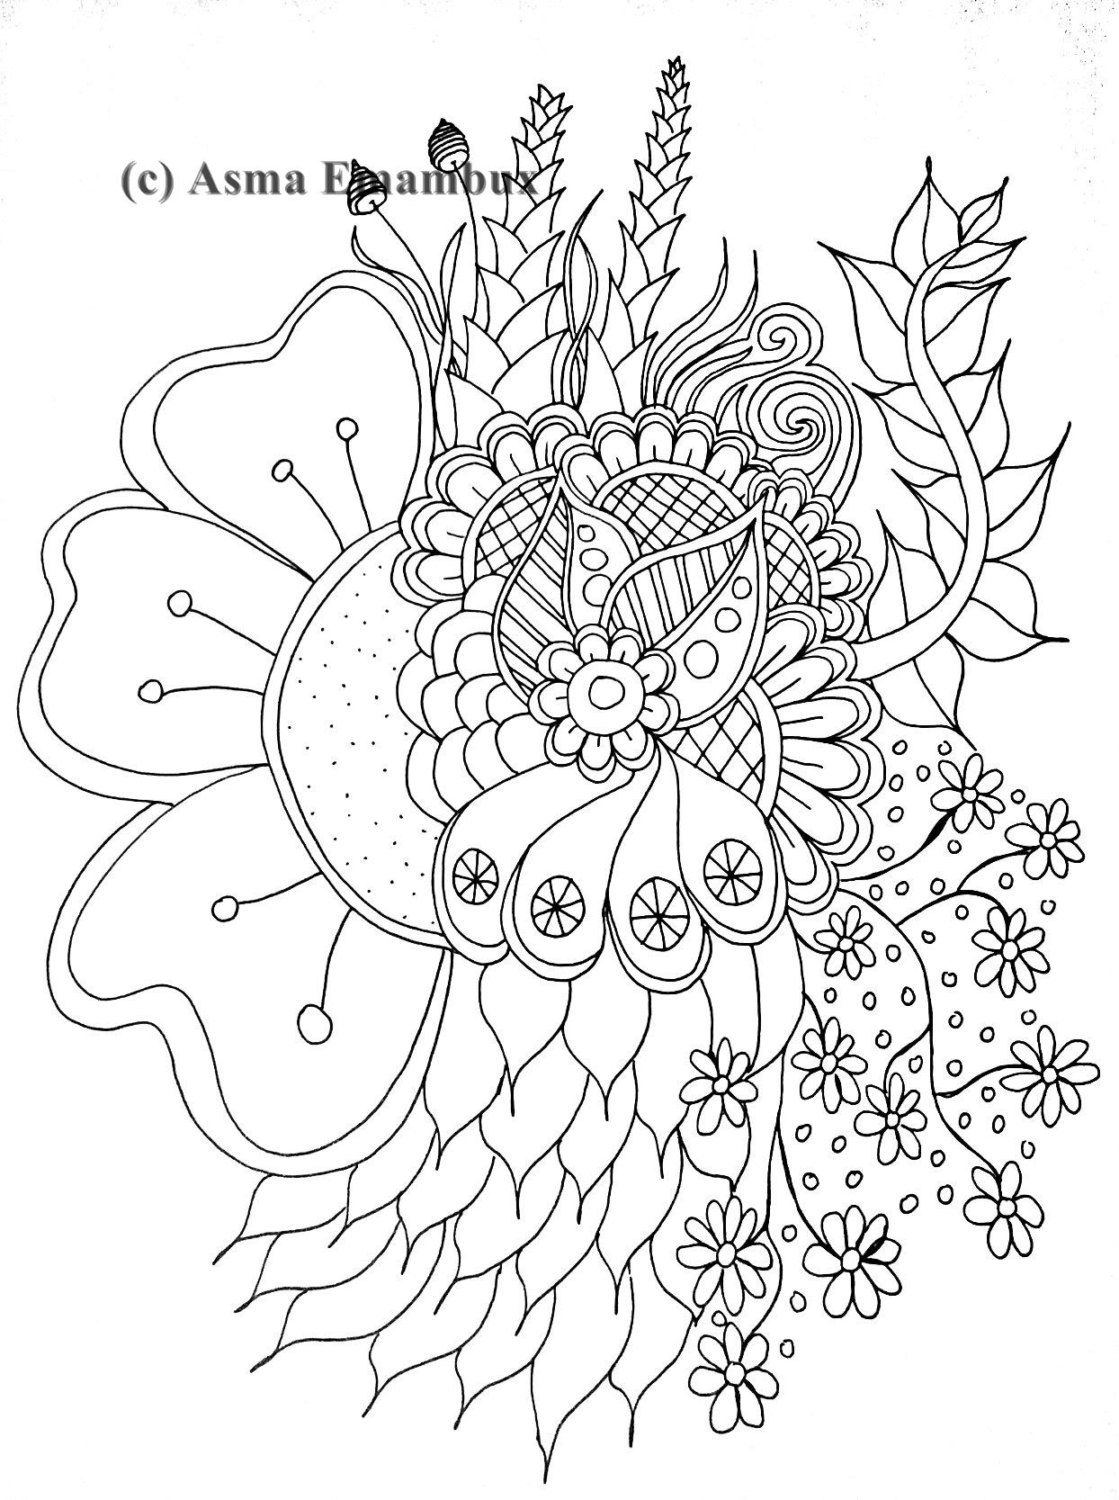 You Will Get Printable Coloring Page File Without The Watermark